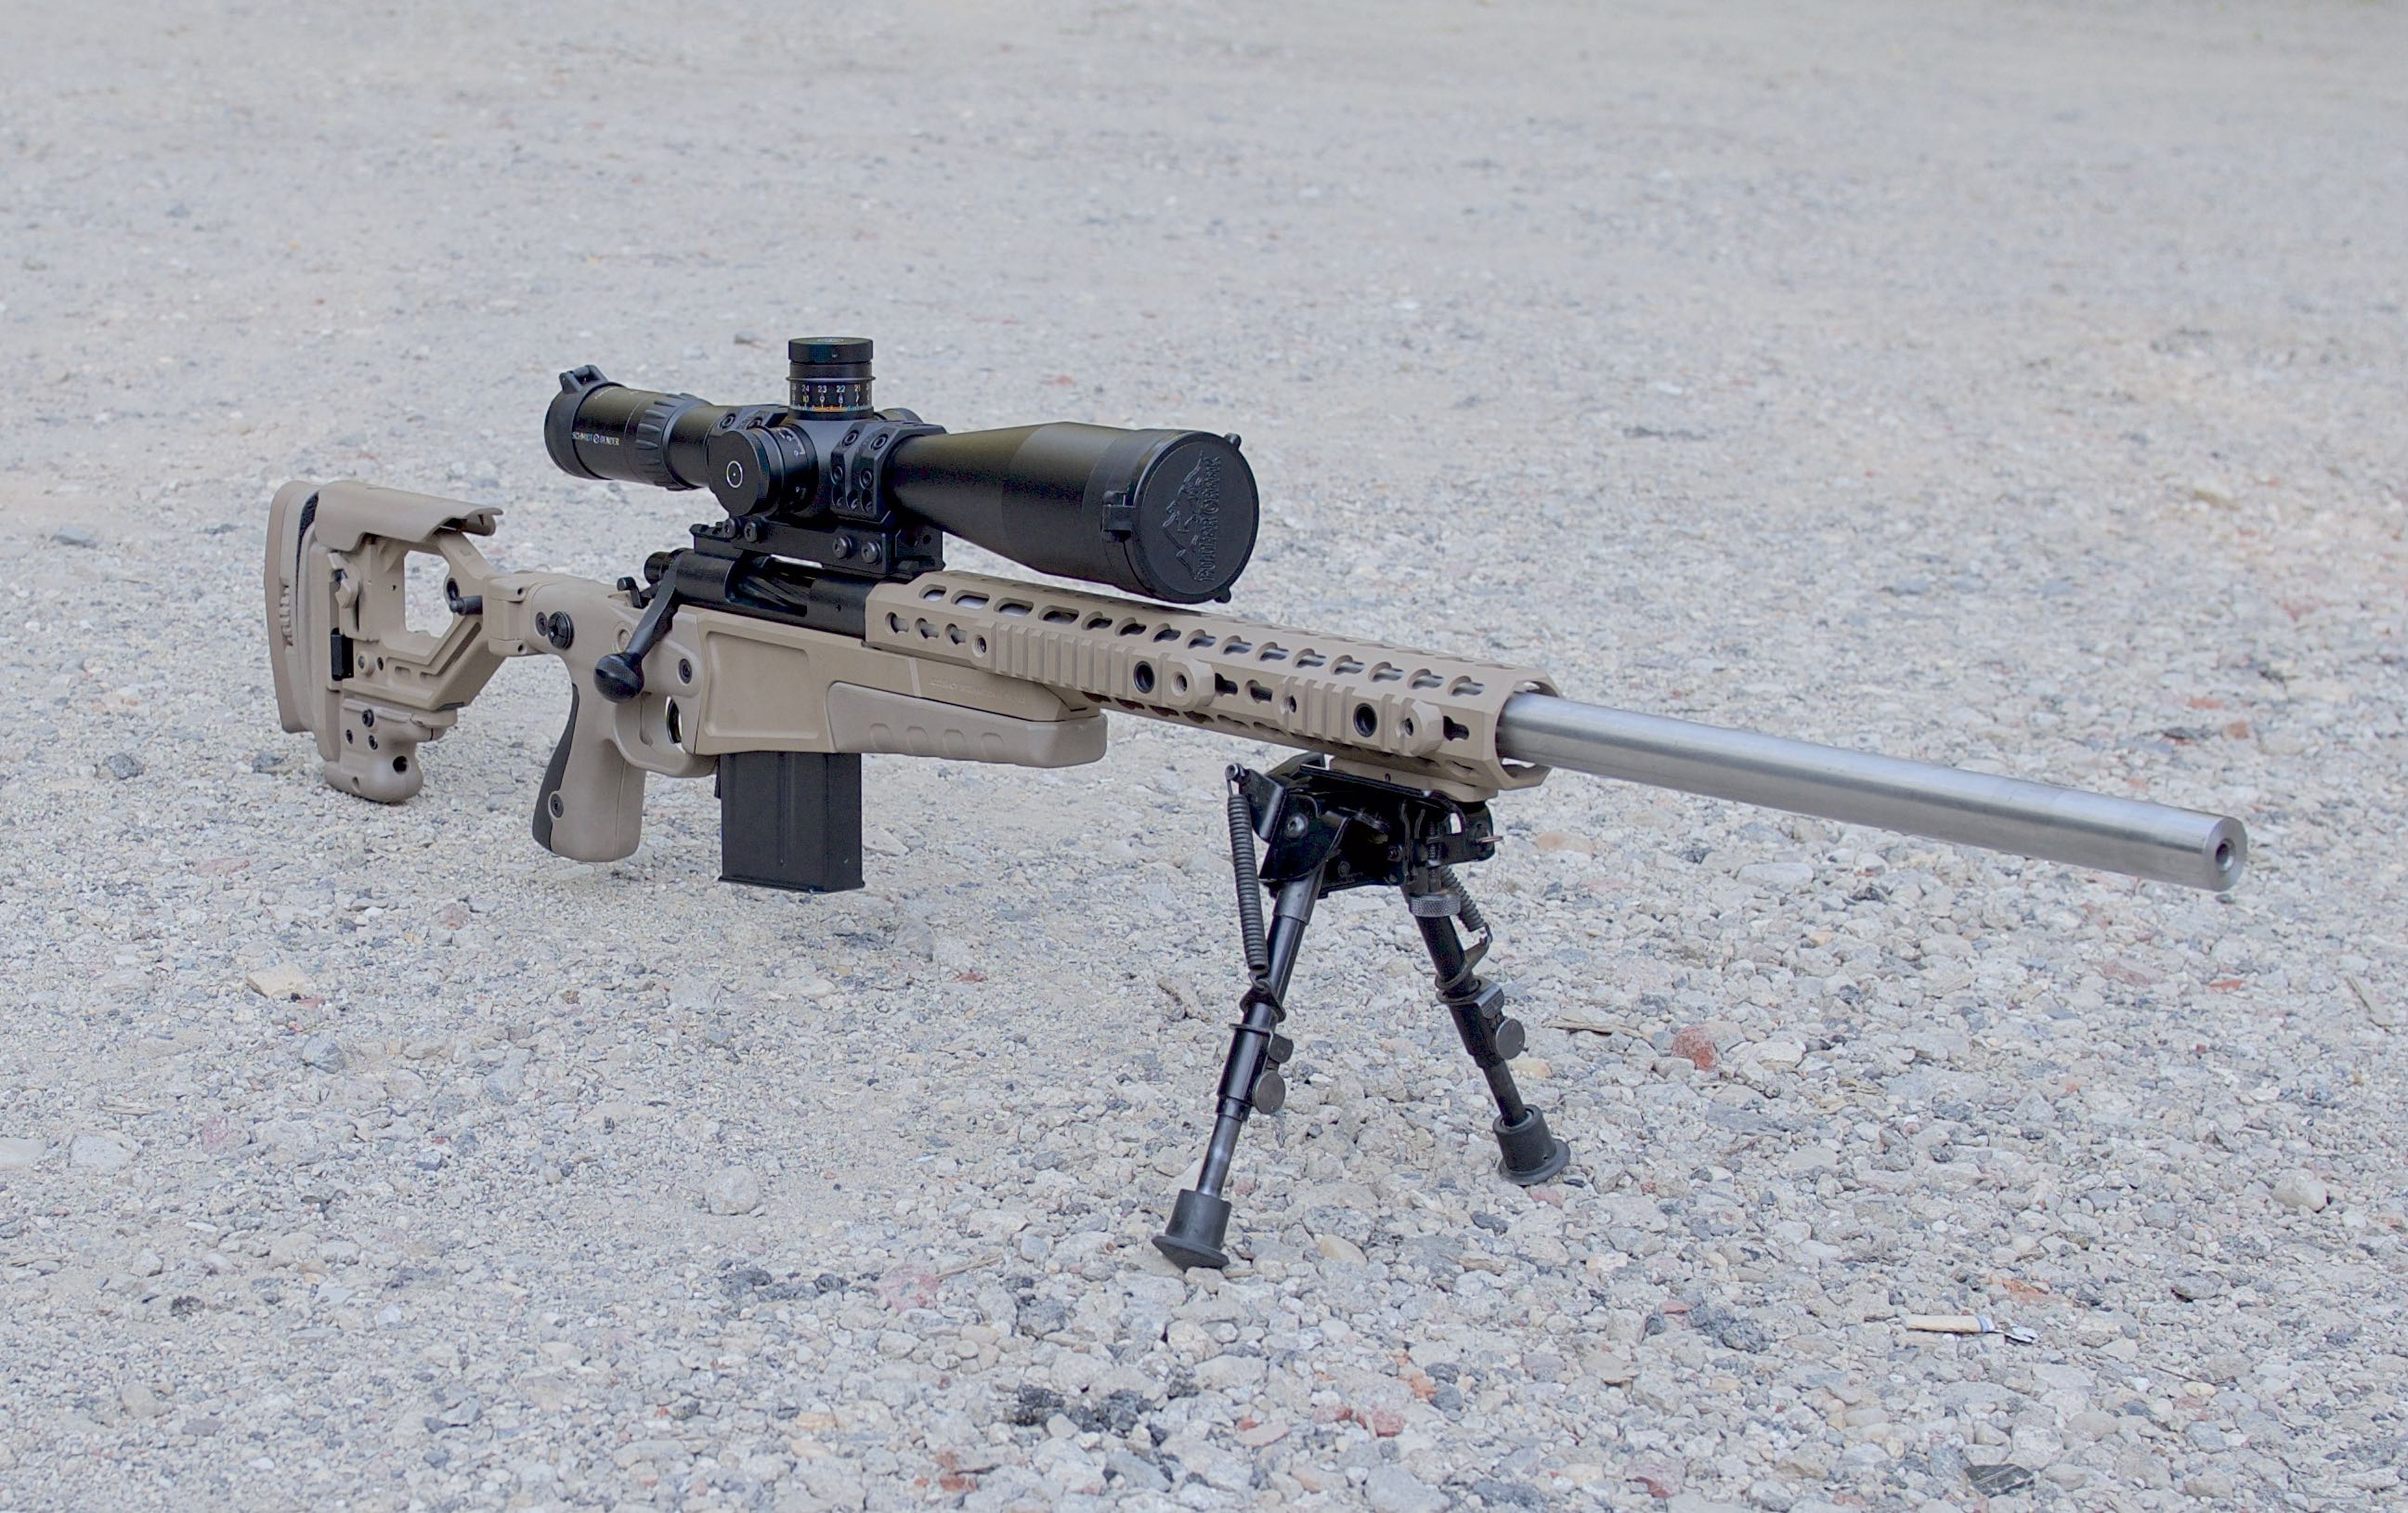 A look at how rifle barrels speed up: Measuring the increase